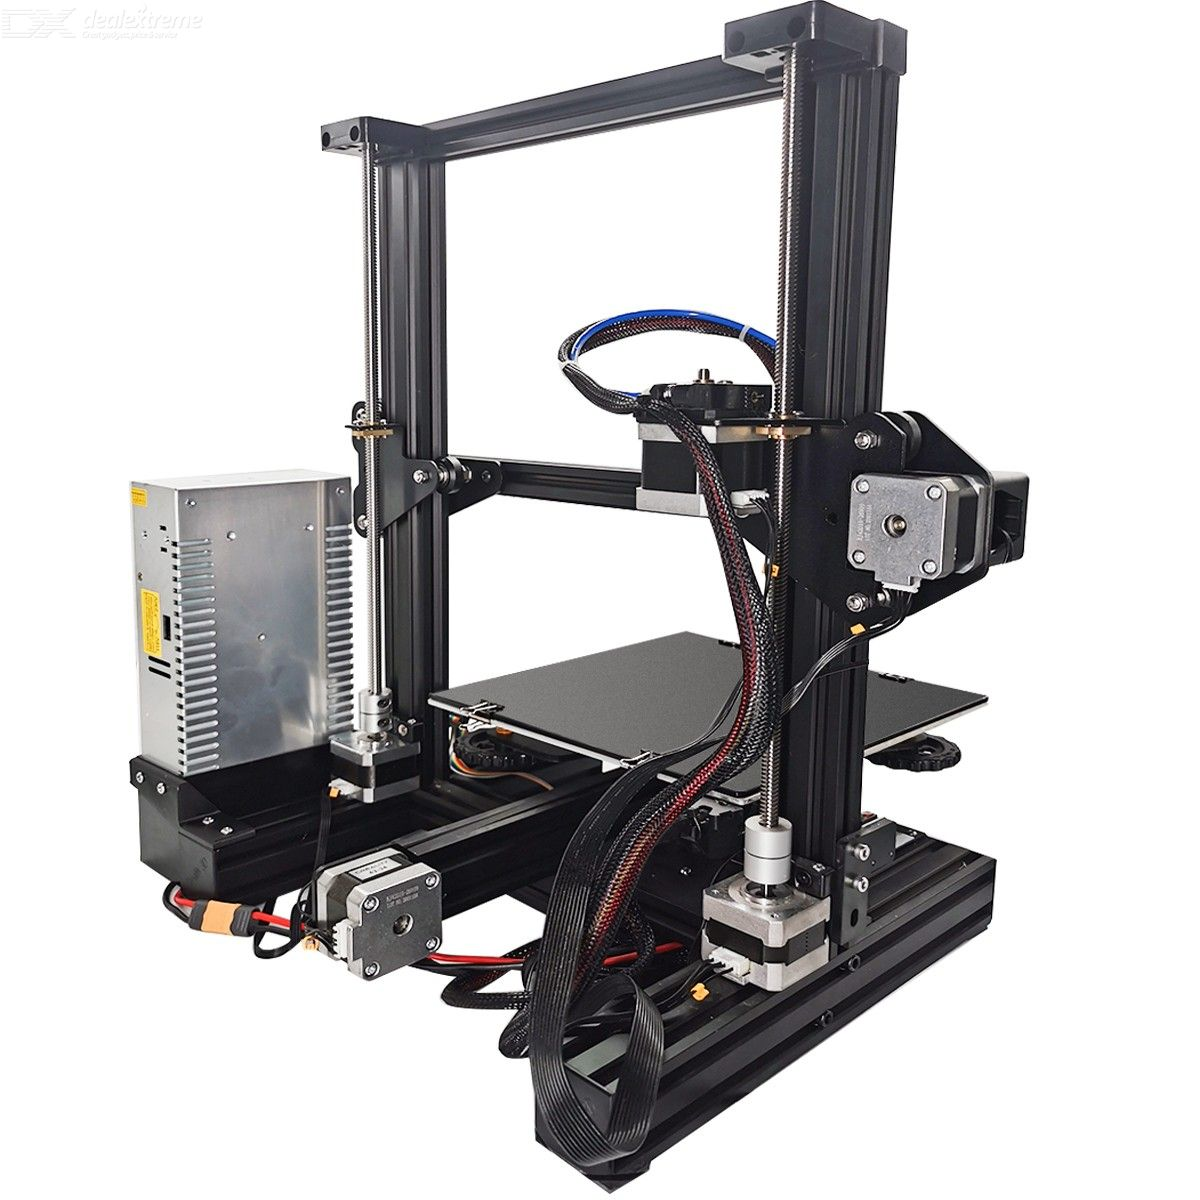 3D Printer Accessories Dual Z Axis Leading Screw Rod Upgrade Kit with Stepper Motor Replacement for Creality Ender 3  3D Printer